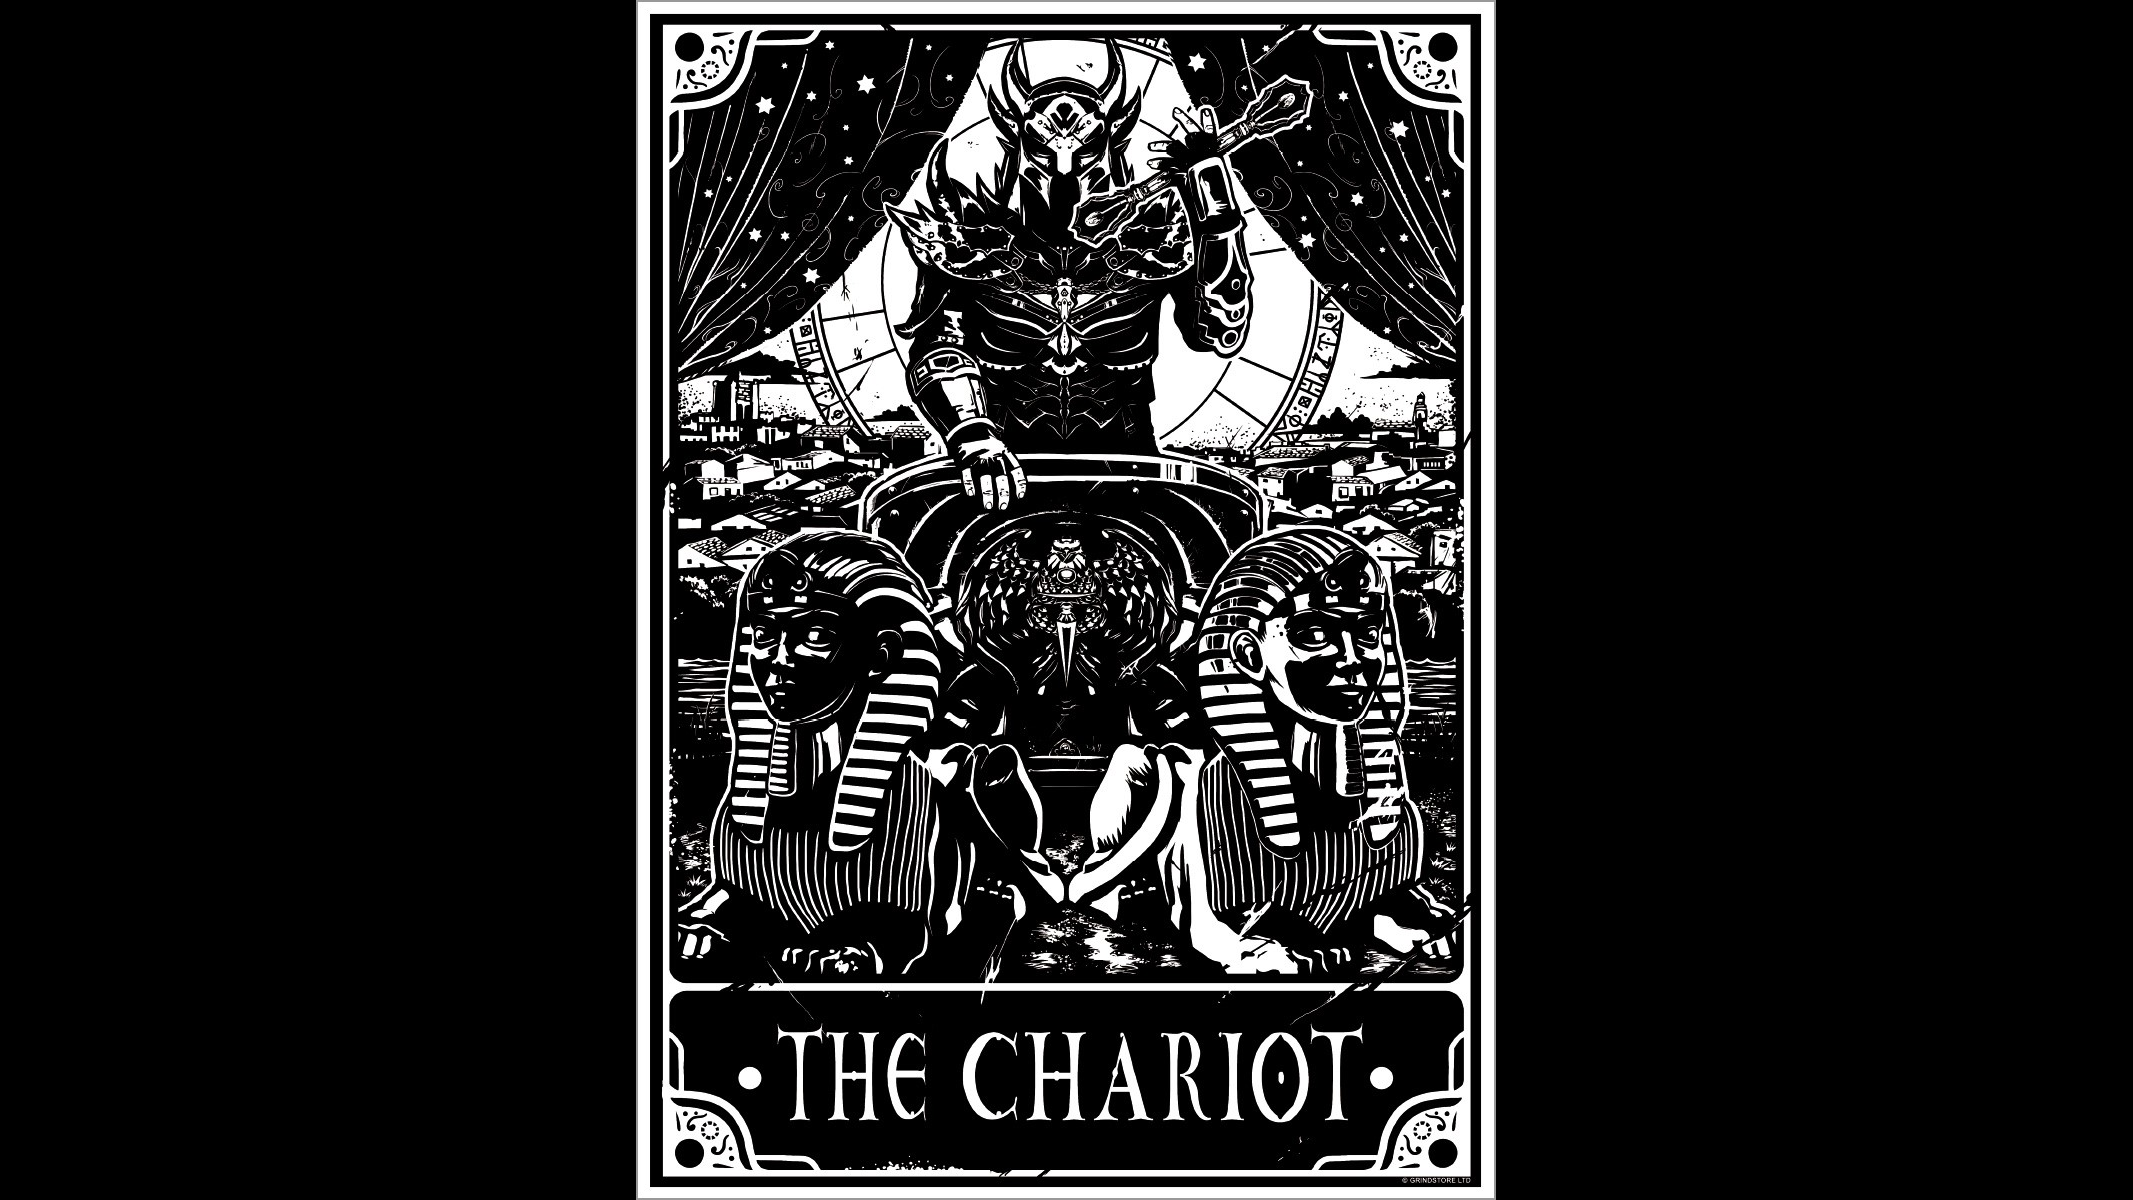 General 2133x1200 monochrome simple background occultism tarot Chariot sphinx helmet text city